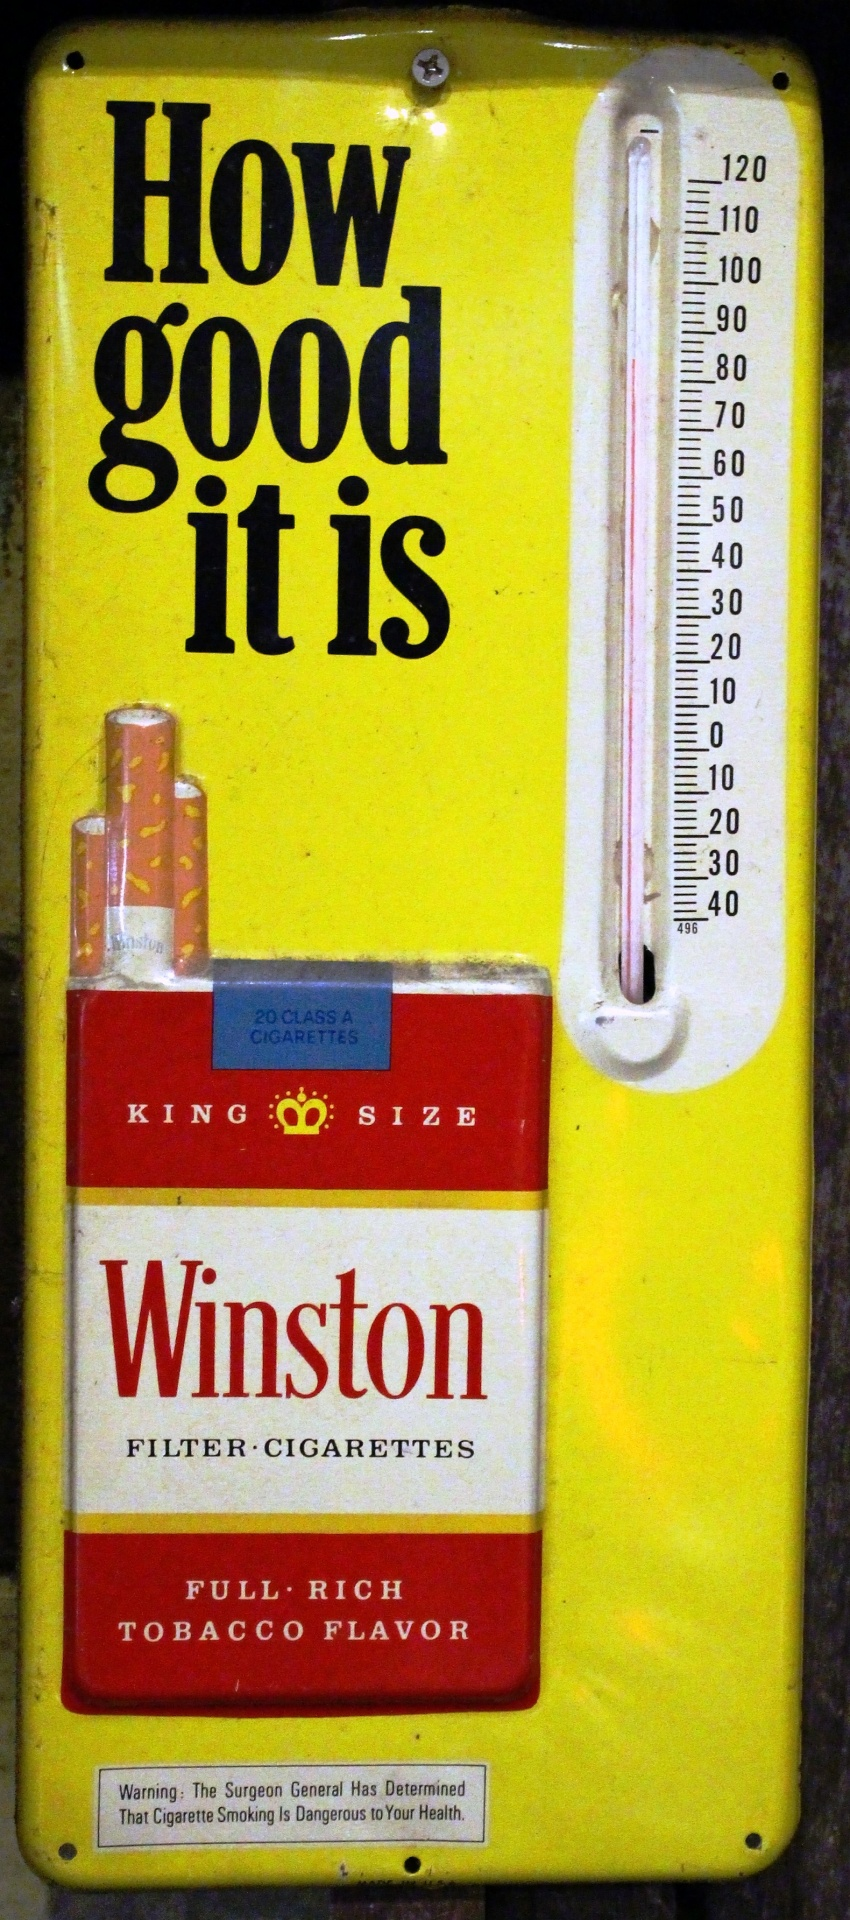 Metal sign advertising Winston cigarettes with a thermometer attached.